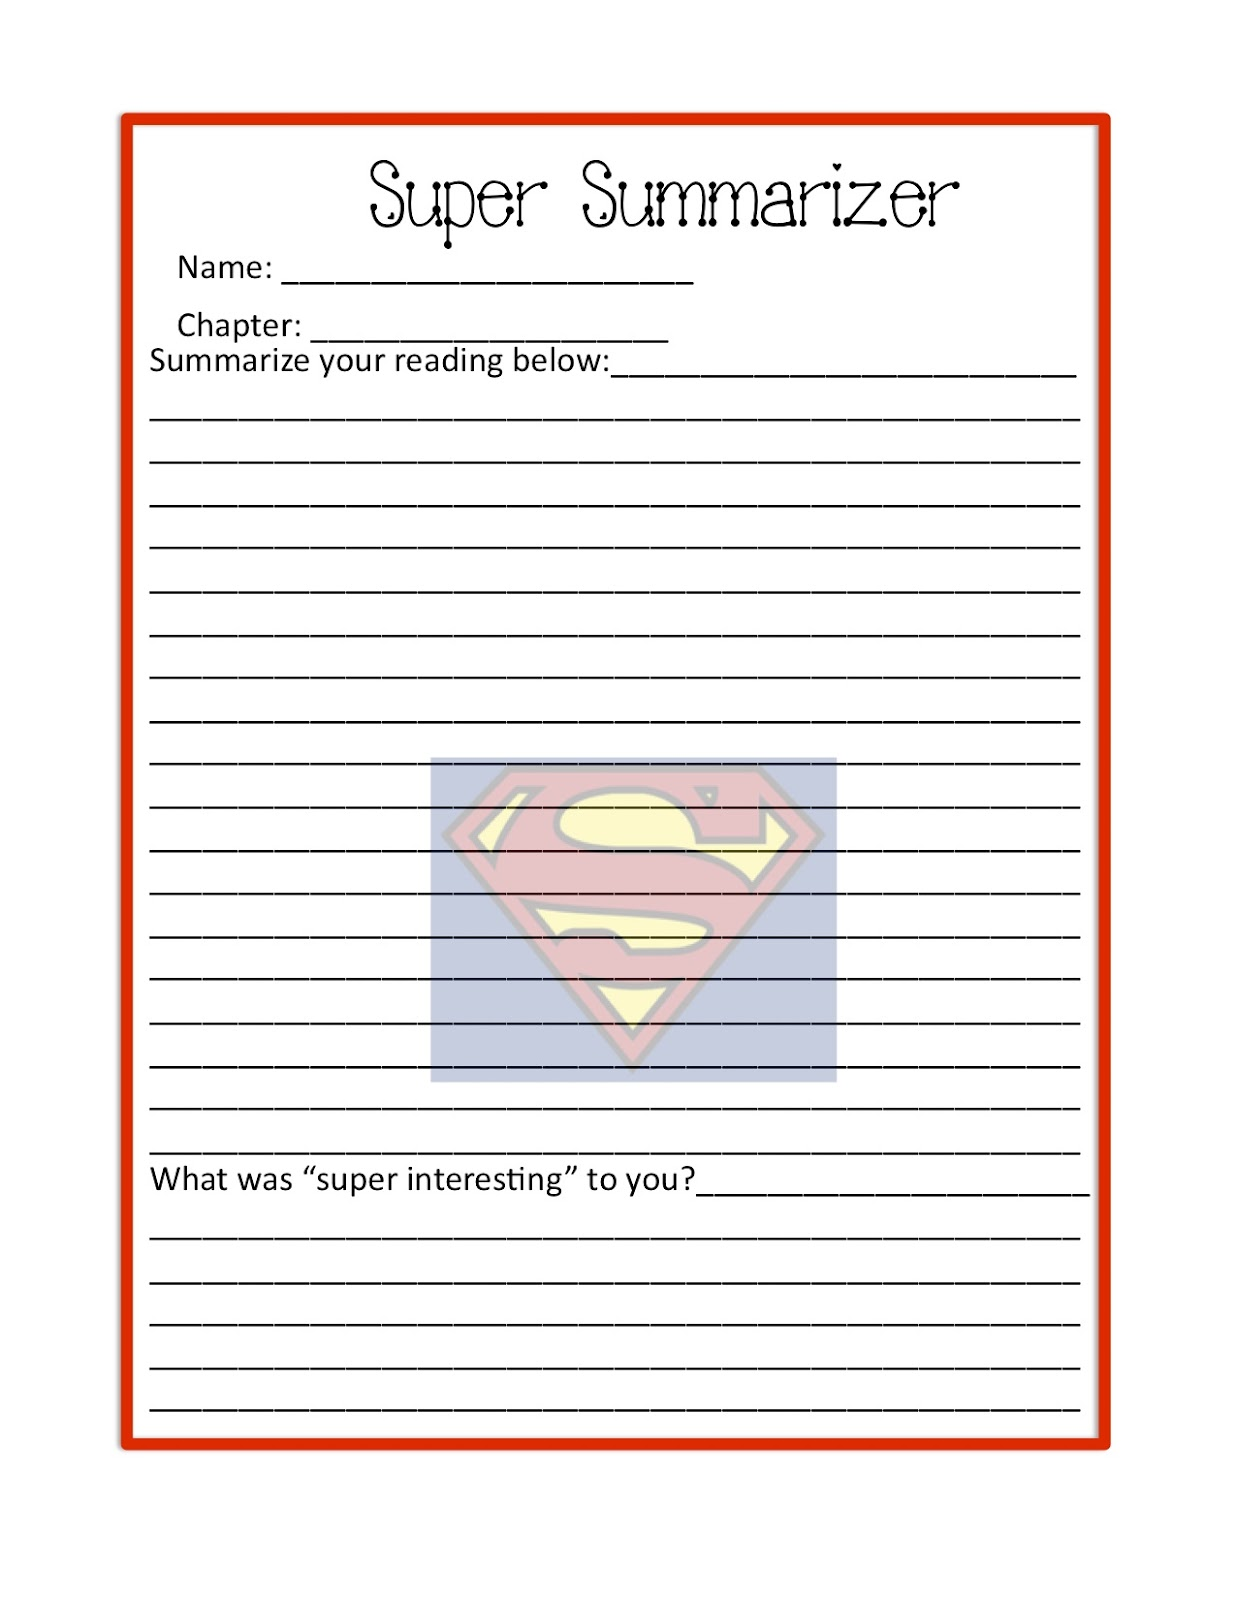 Teaching With Class 7 Literature Circle Job Worksheets